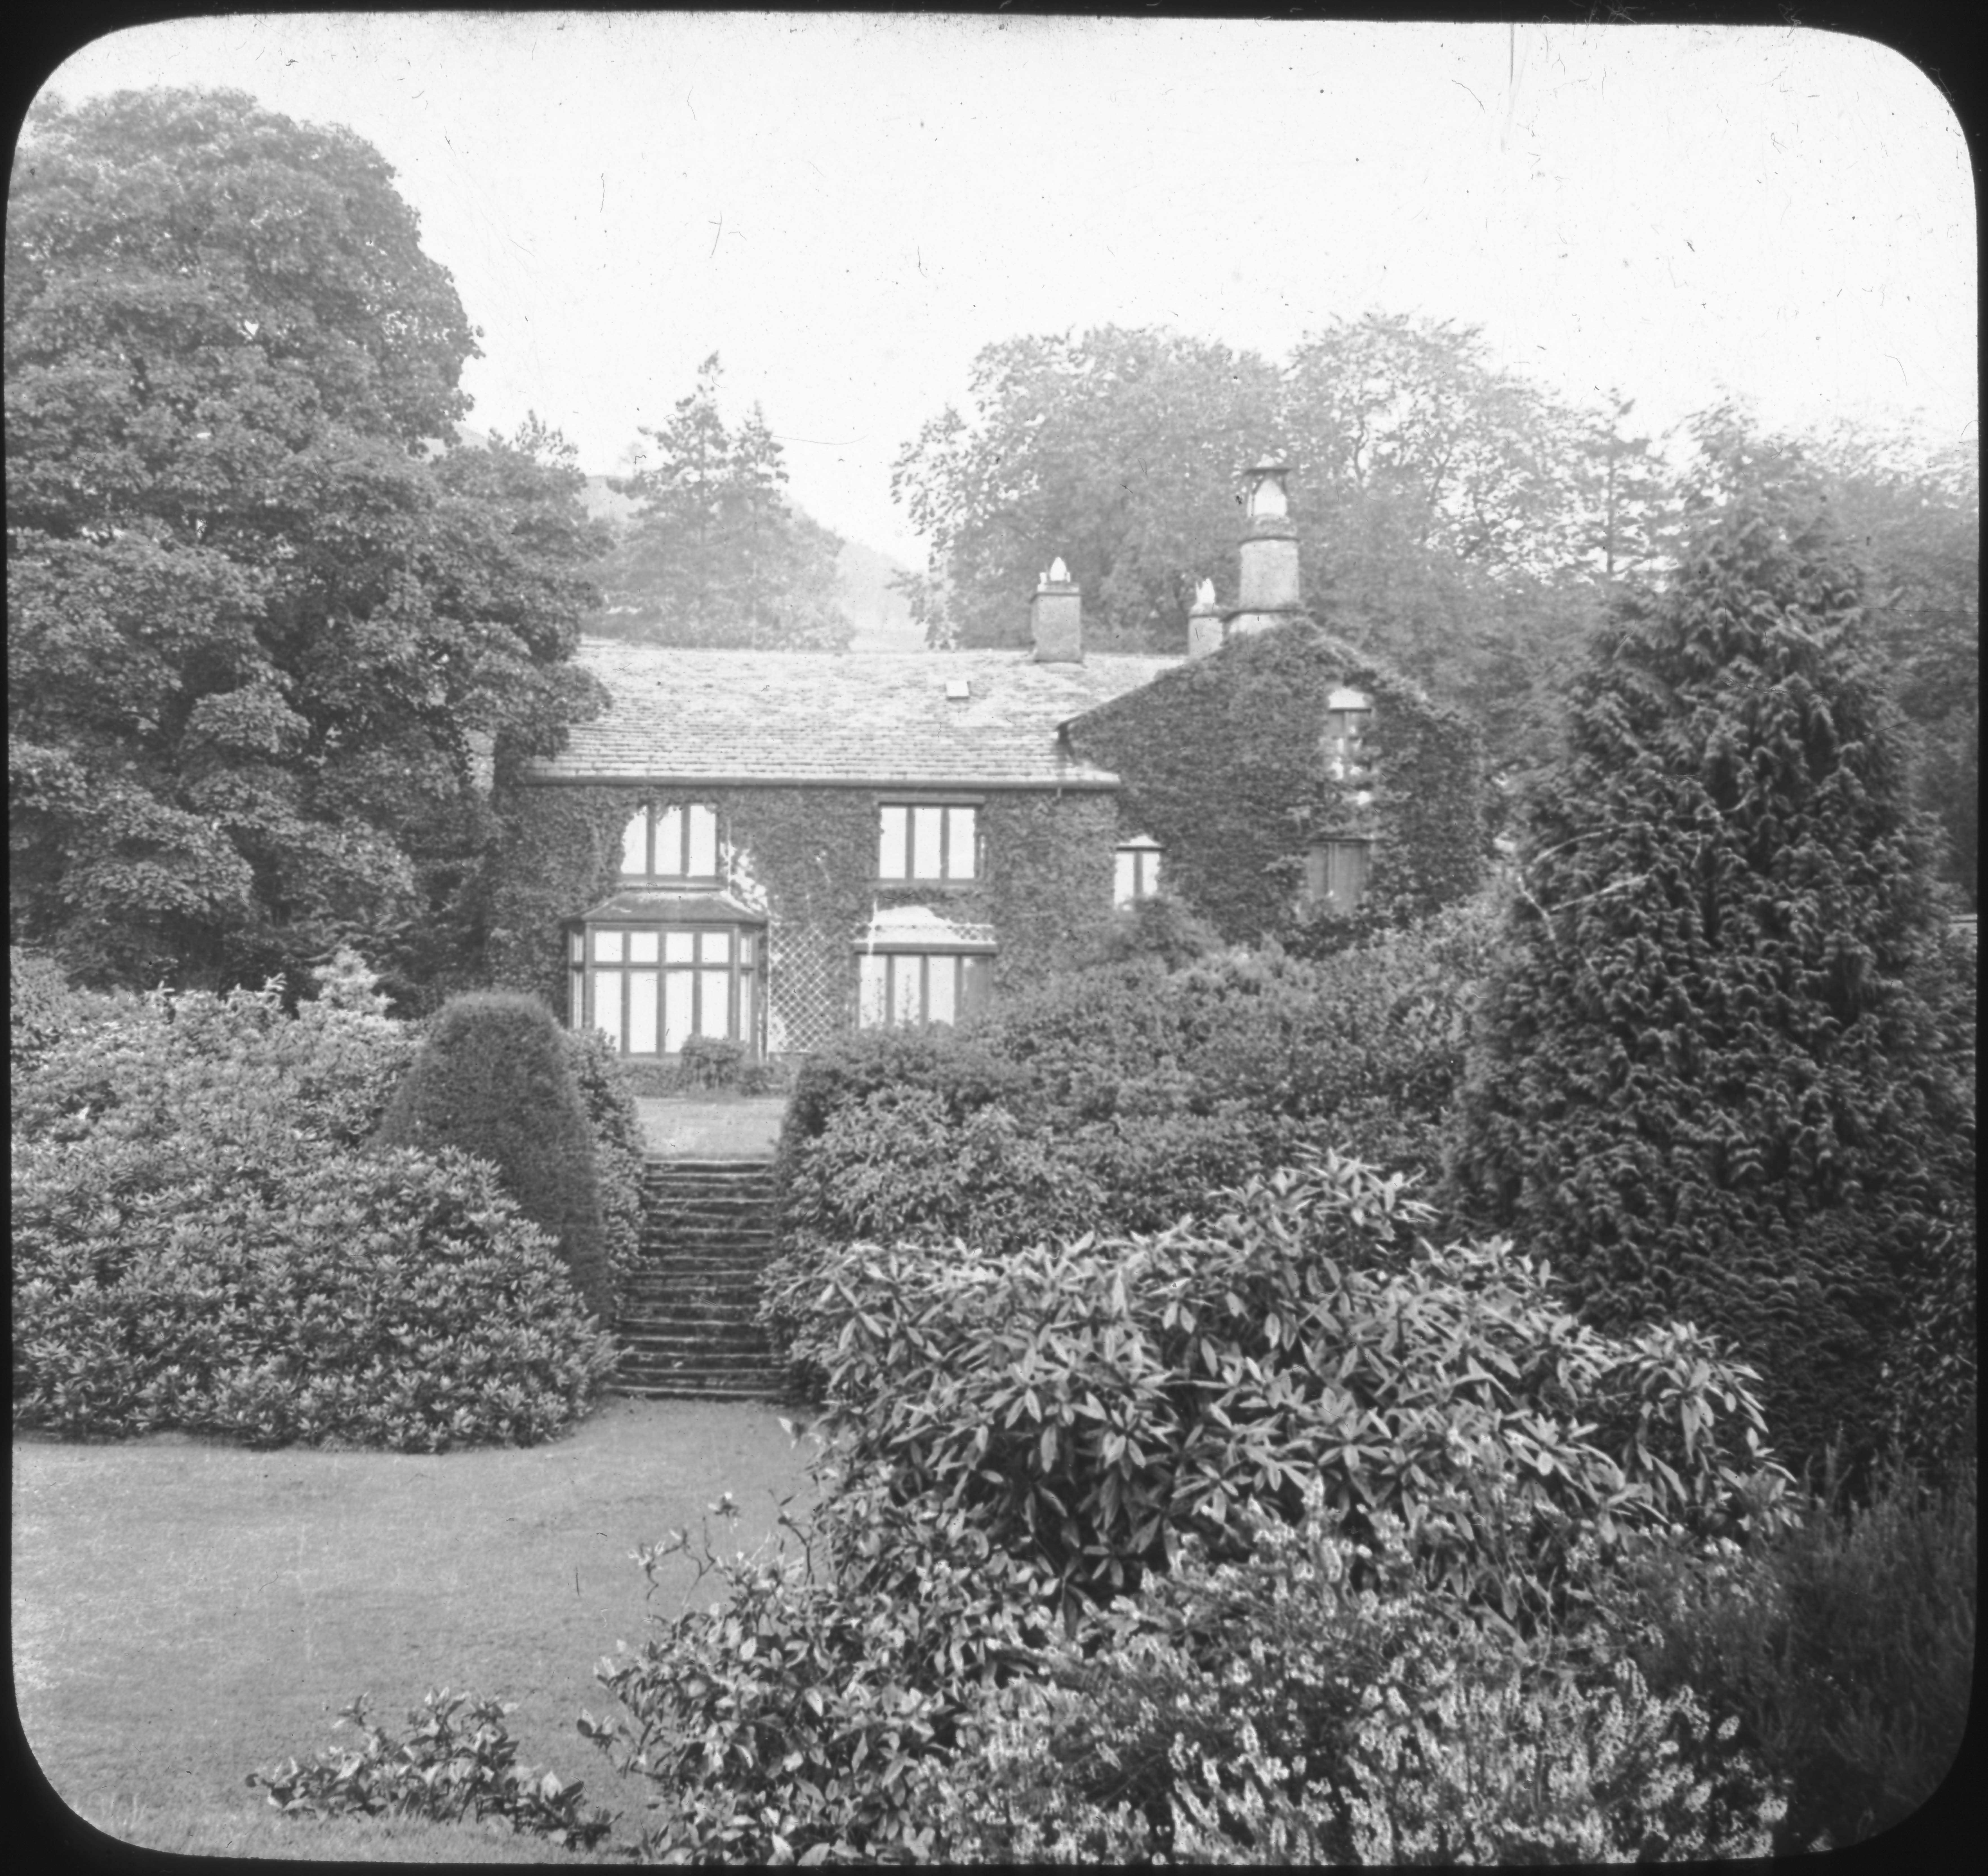 Wordsworth's Home, Rydal Mount, England.